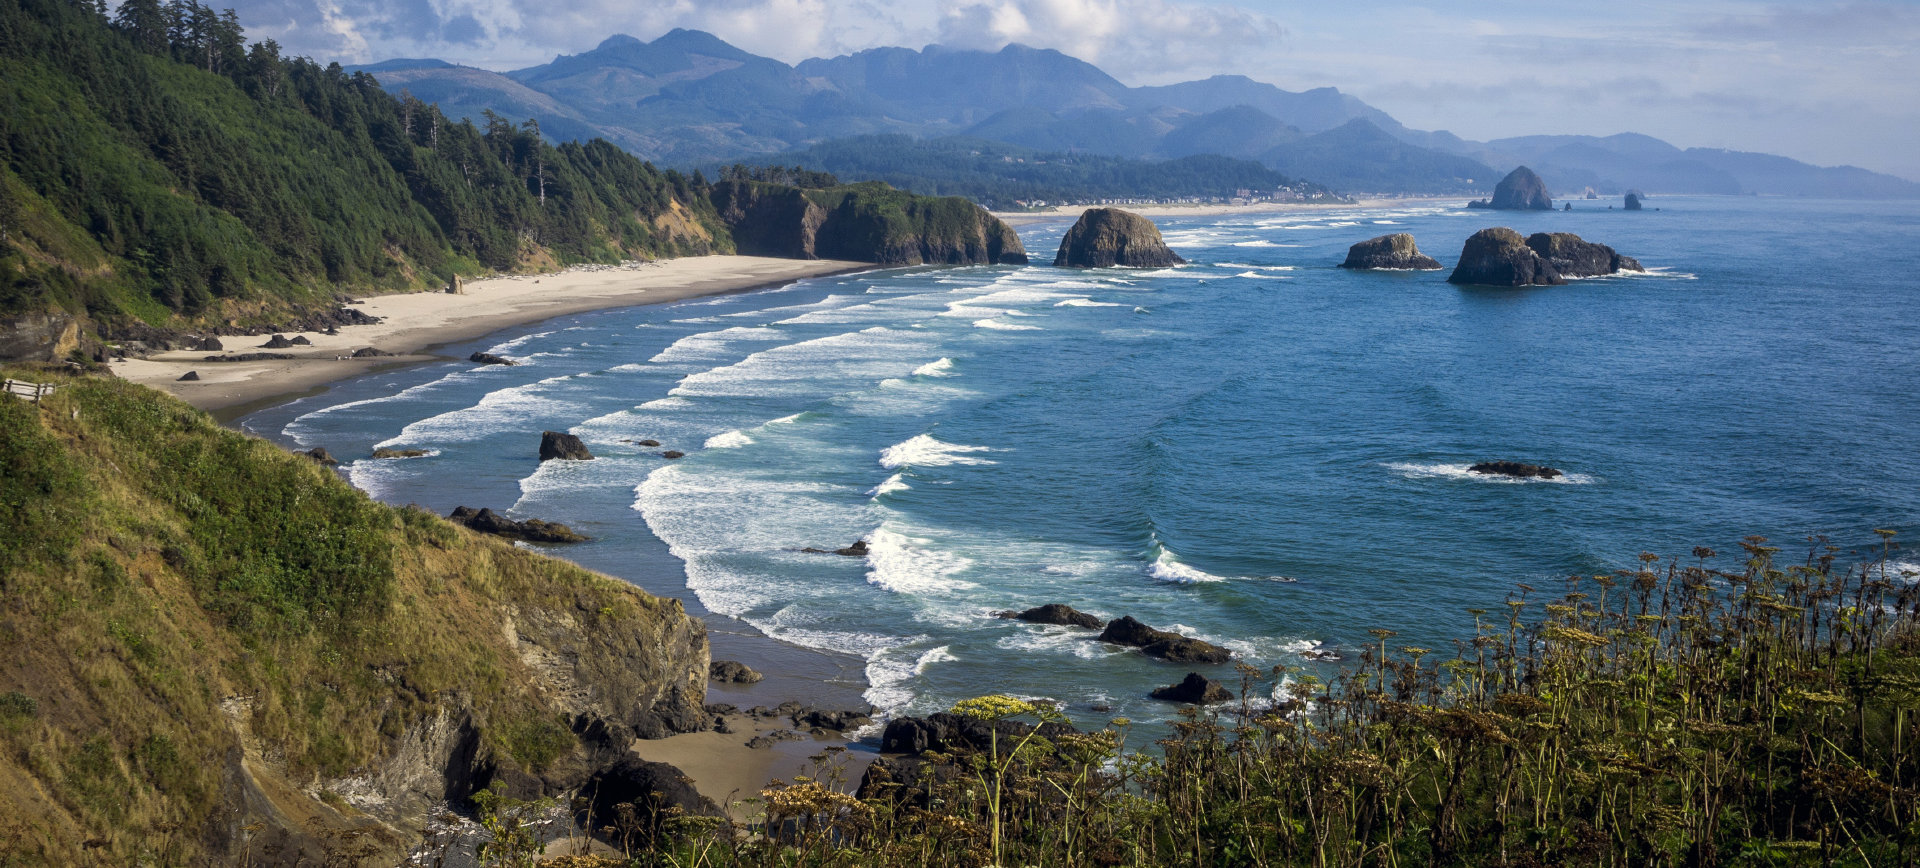 The 25 Best State Parks in America